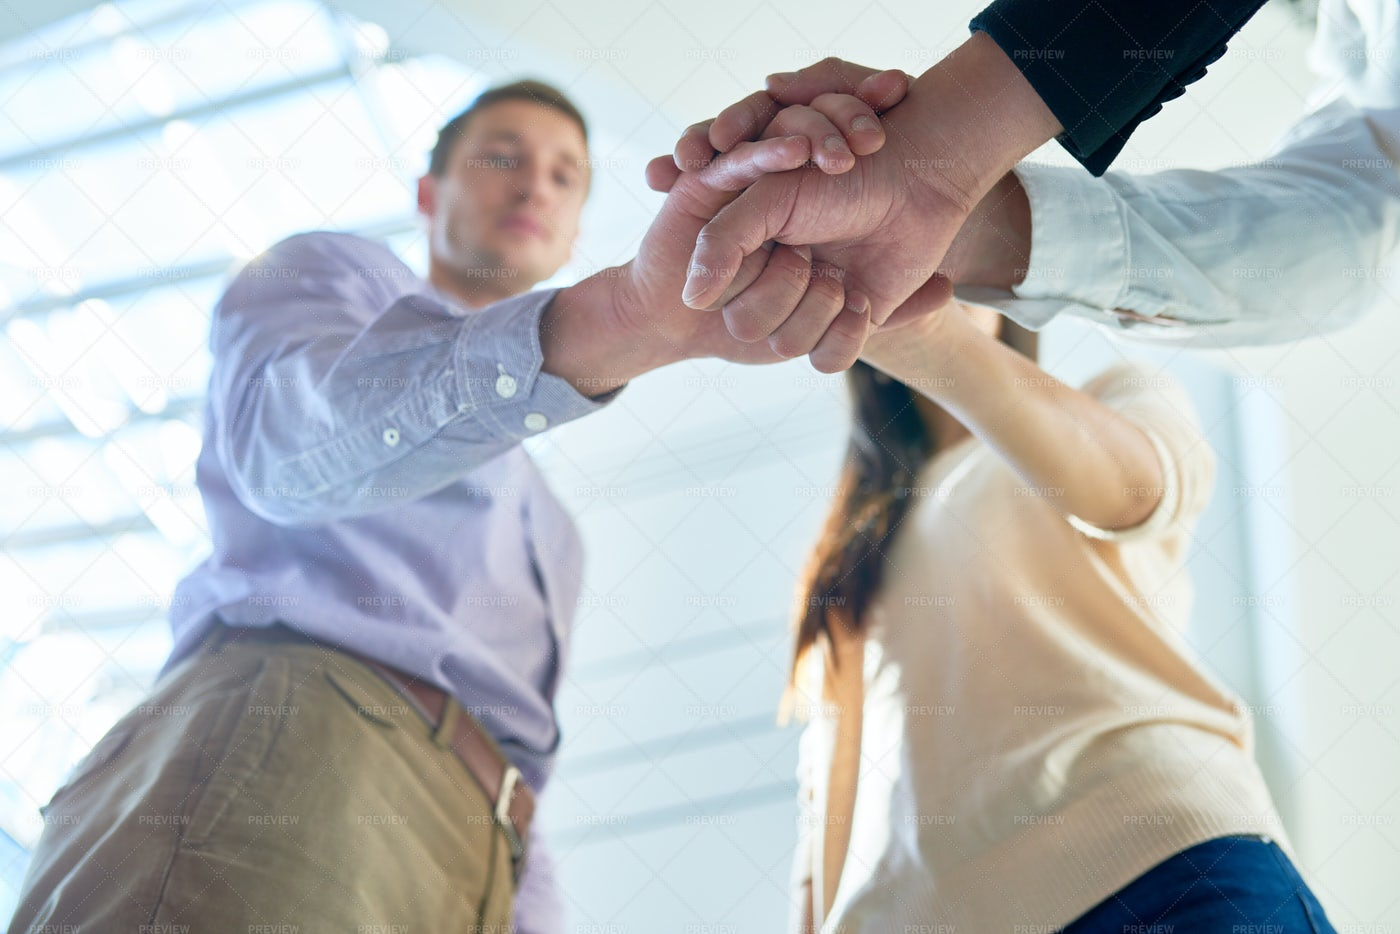 Joining Hands Together: Stock Photos